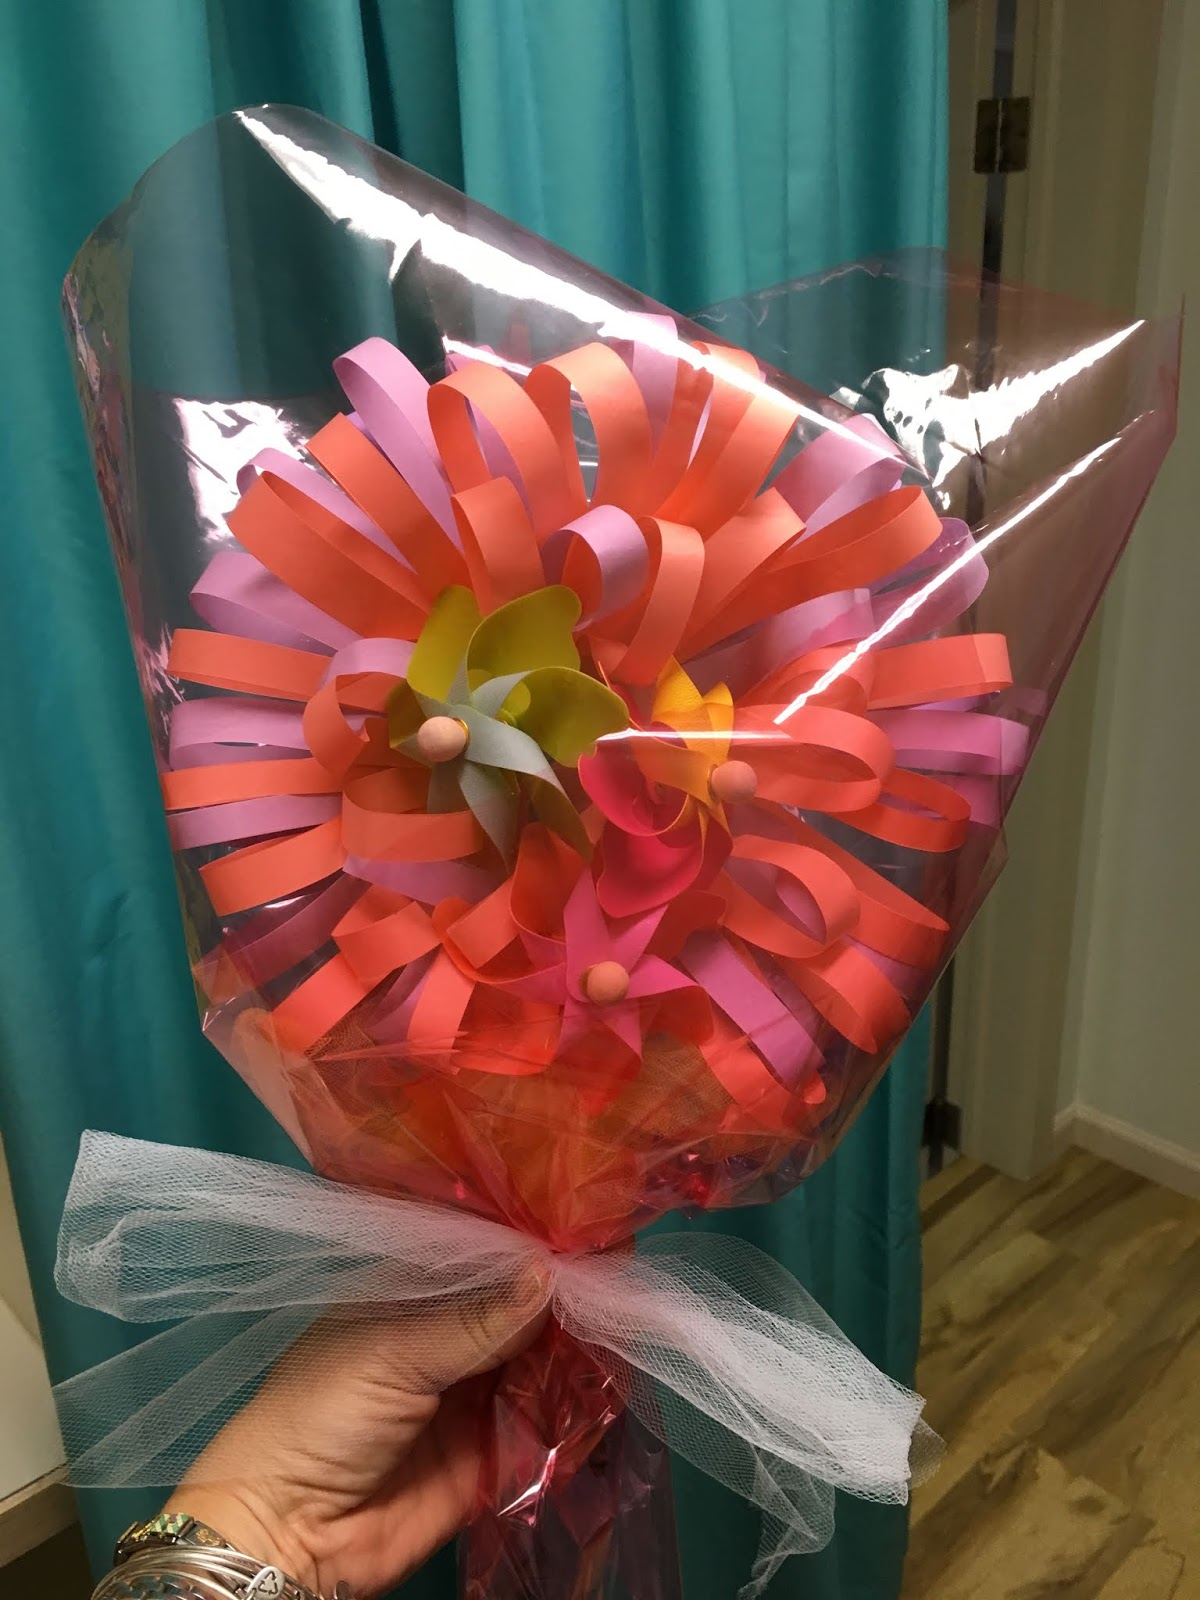 Make my day camp paper flower with pinwheels center to finish it i did glittery paper before adding the pinwheels to finish i wrapped it in cellophane so itd look more like a flower bouquet mightylinksfo